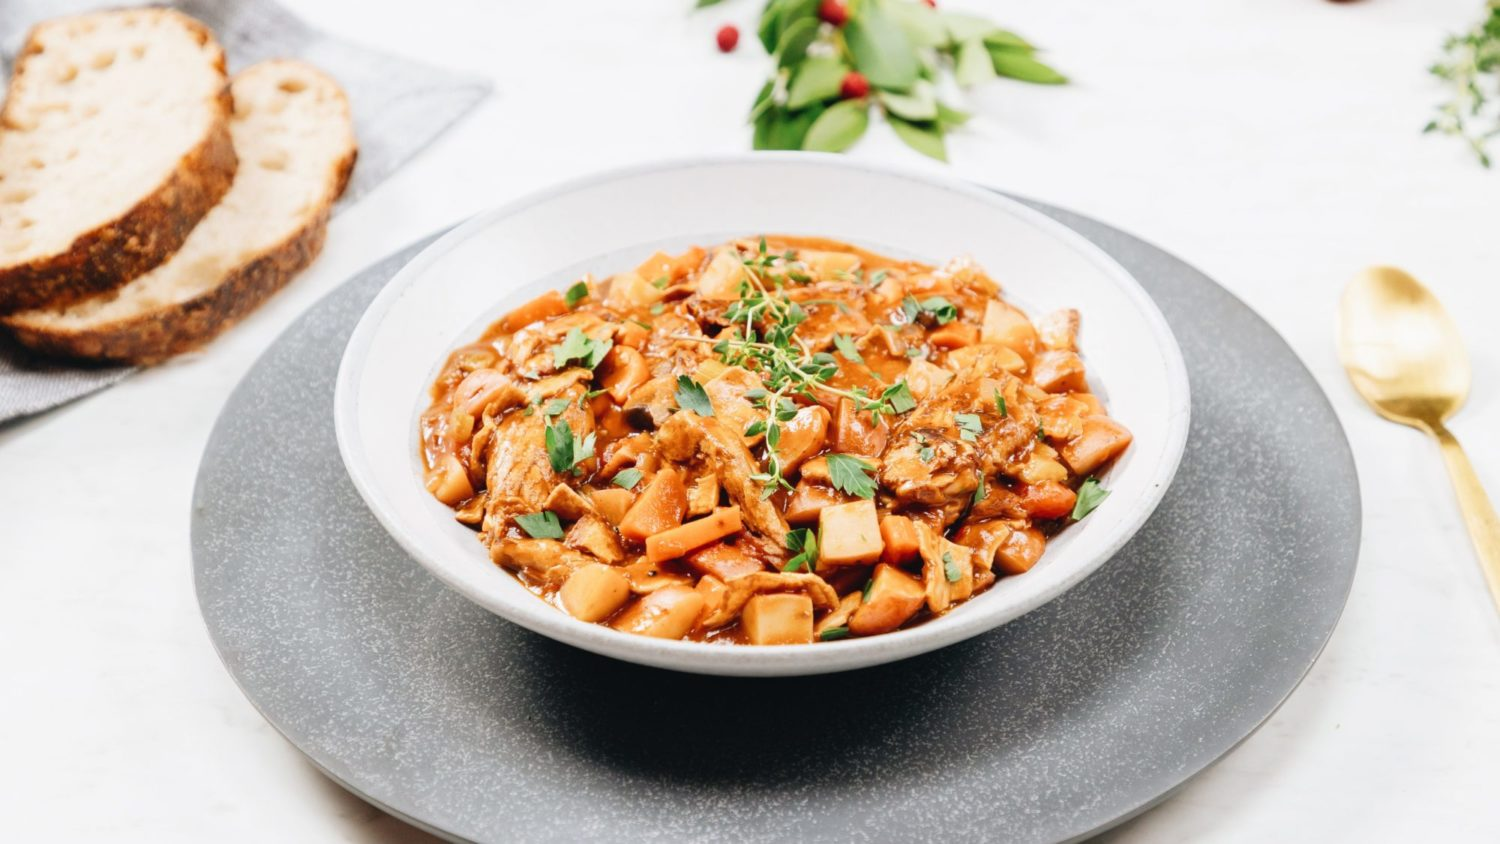 Hearty Vegan Stew With Potatoes and Plant-Based Pulled Pork